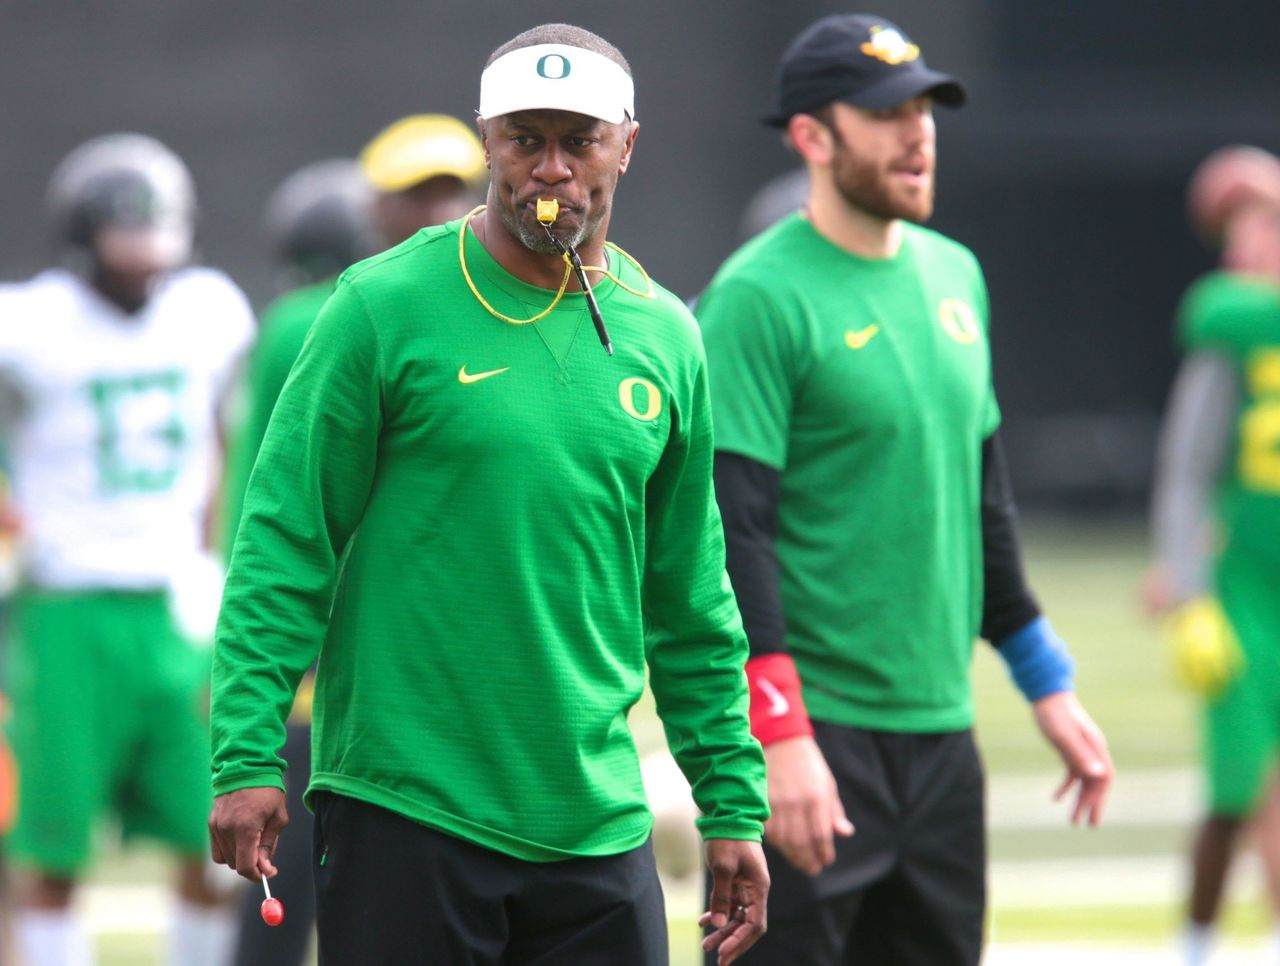 Cropped 2017 04 21t204559z 403307327 nocid rtrmadp 3 ncaa football oregon spring practice